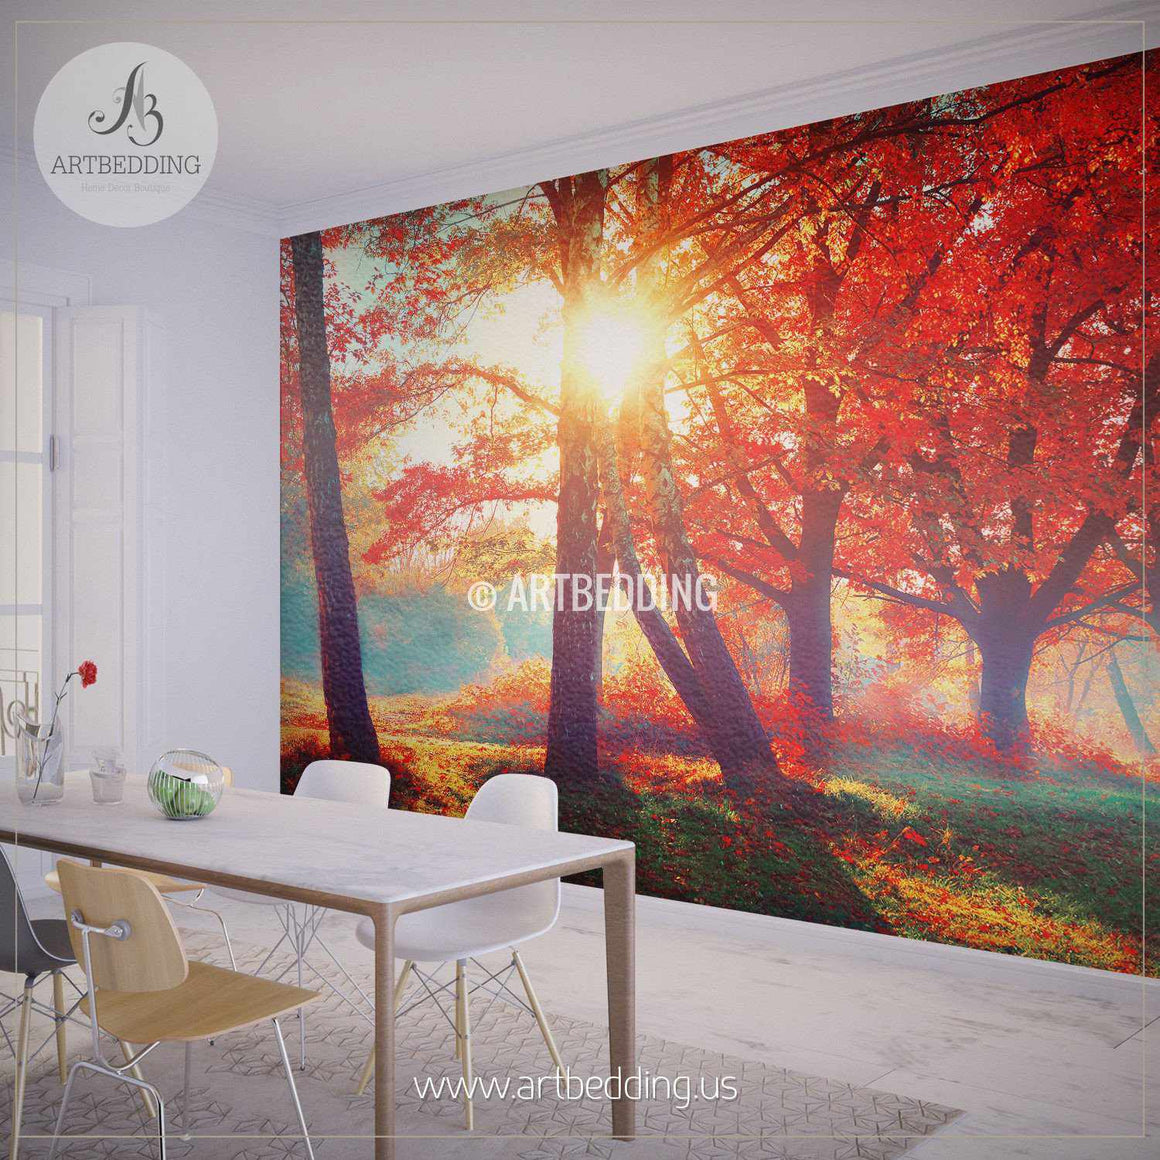 Autumn Fall Wall Mural, Self Adhesive Peel & Stick Photo Mural, Forest wall mural, Photo mural home decor wall mural